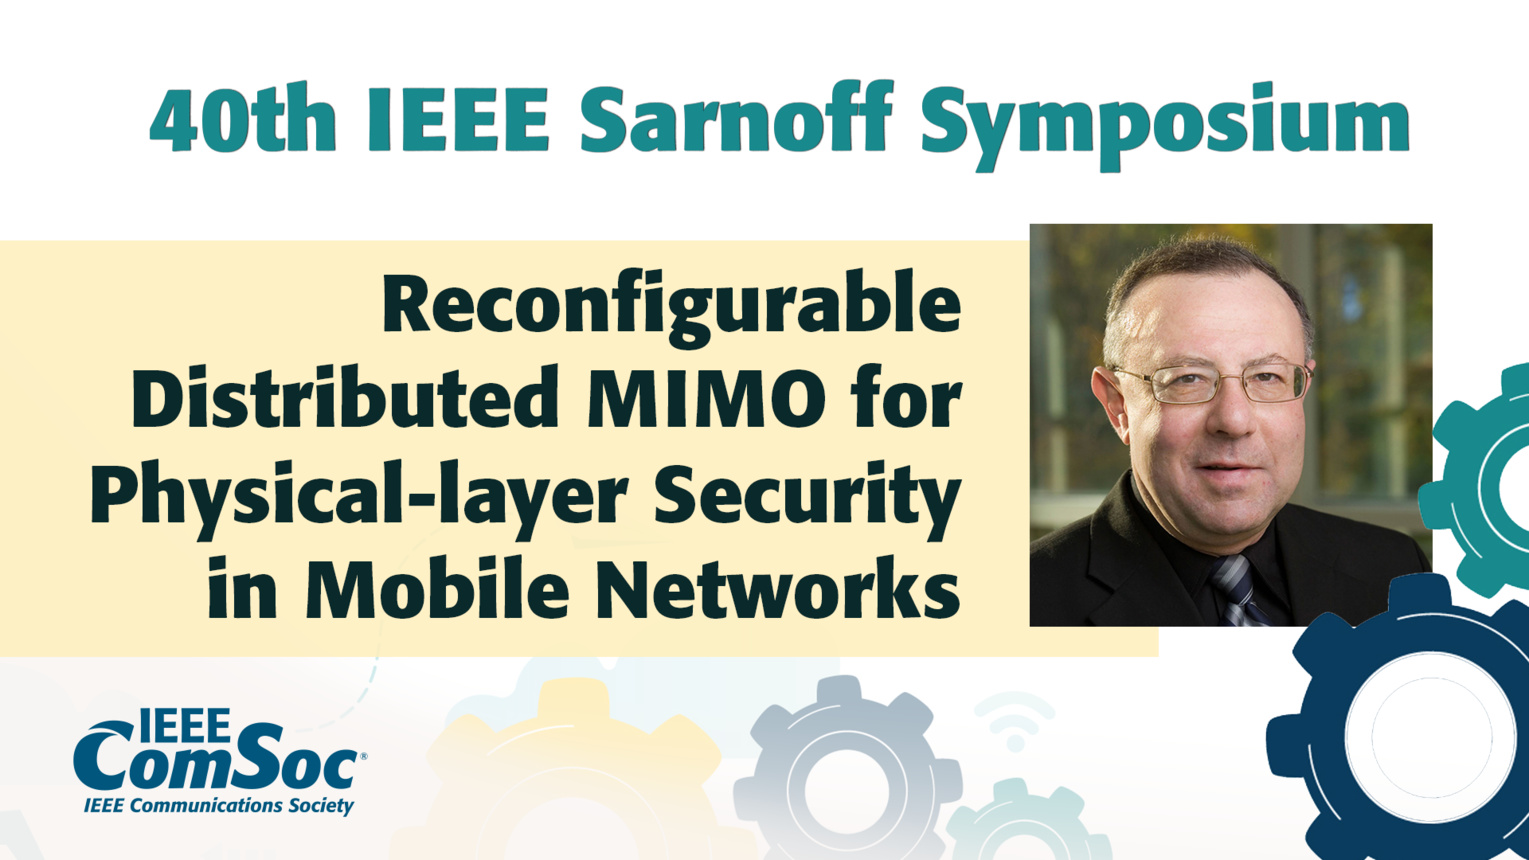 Reconfigurable Distributed MIMO for Physical-layer Security - Zygmunt Haas - IEEE Sarnoff Symposium, 2019